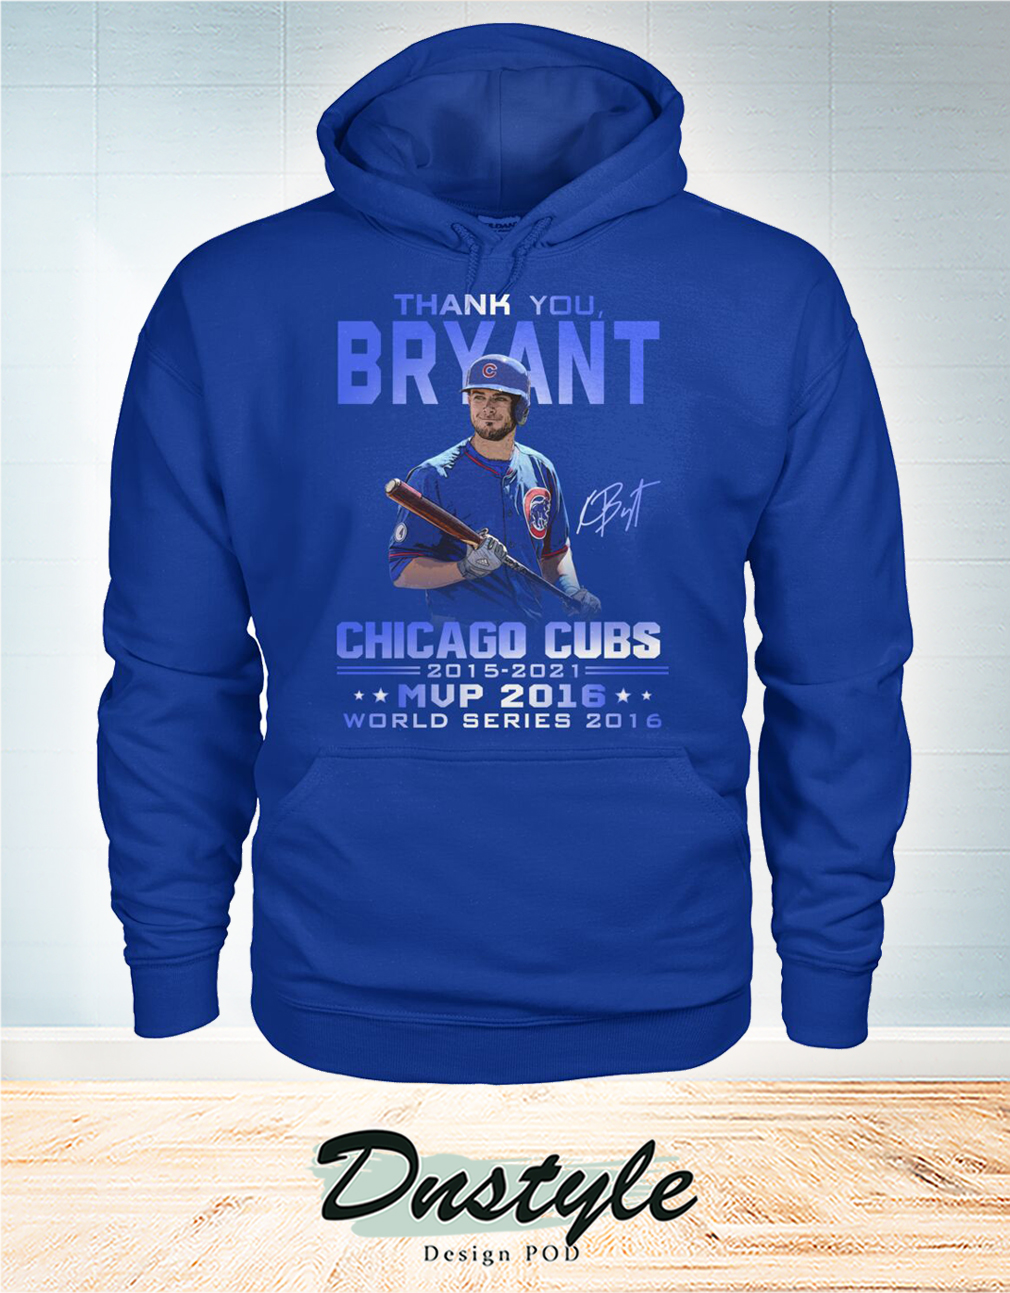 Thank you Bryant signature chicago cubs mvp 2016 hoodie